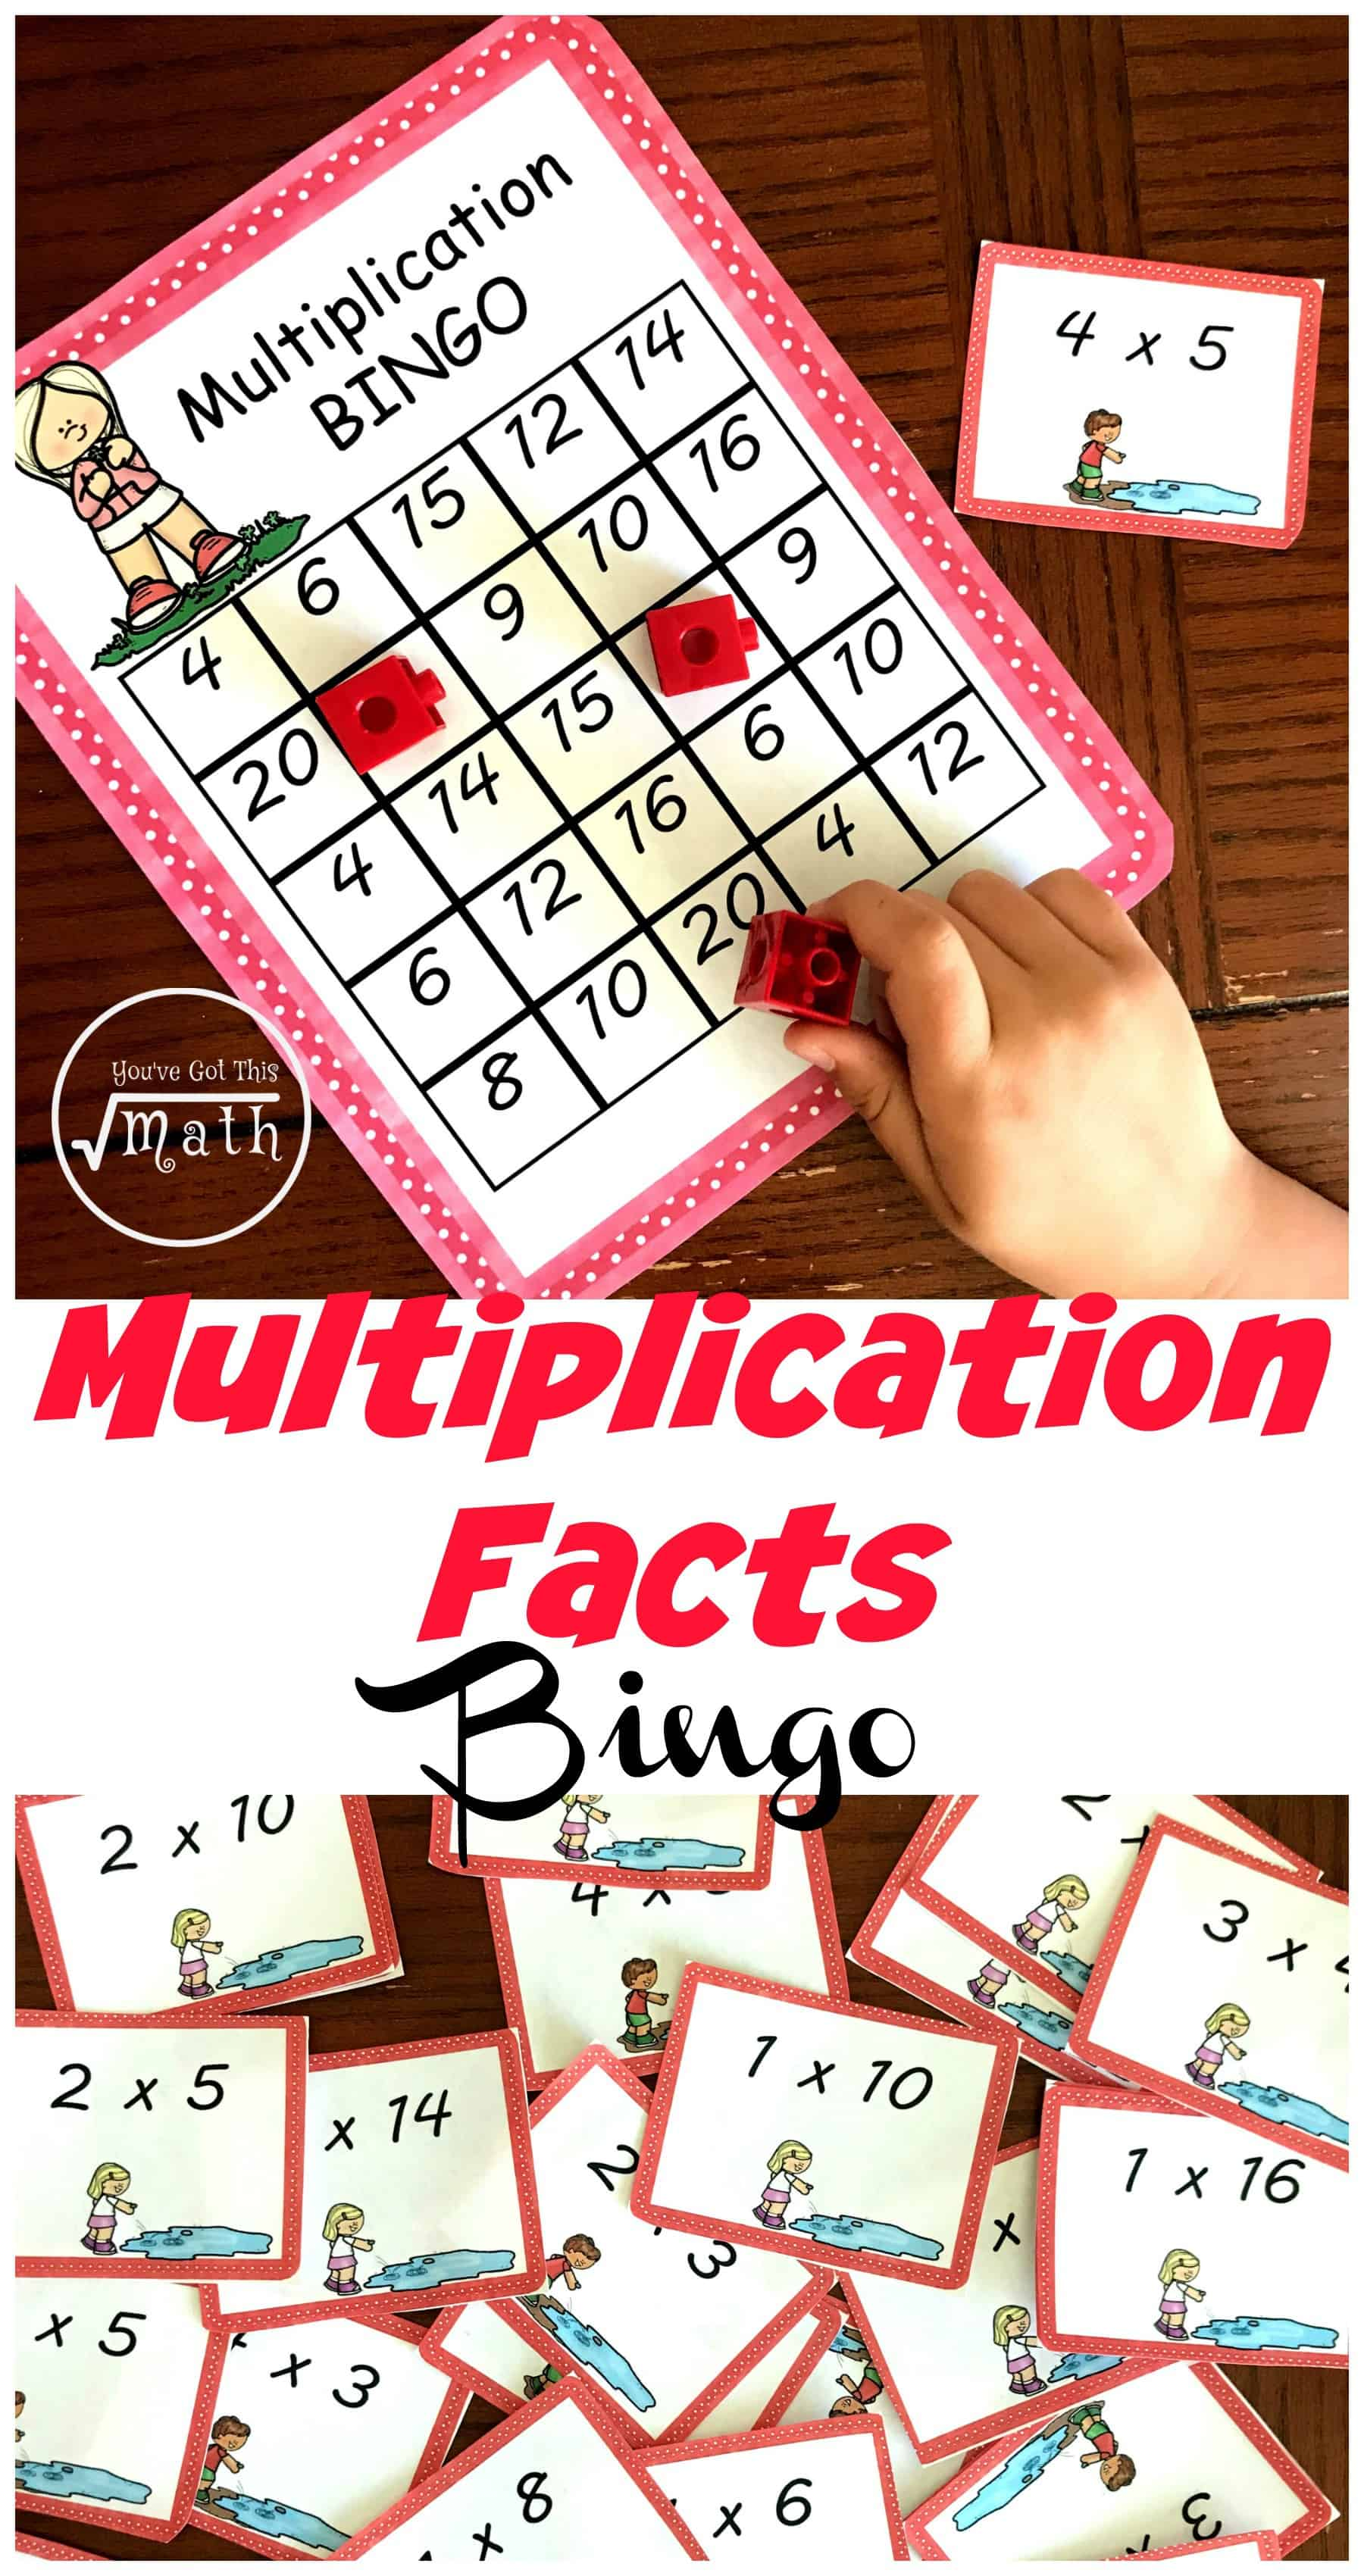 These fun multiplications games are a wonderful way for children to practice their multiplication facts. The children solve multiplication expressions and cover them up on their game board. The first person to get five in a row wins.